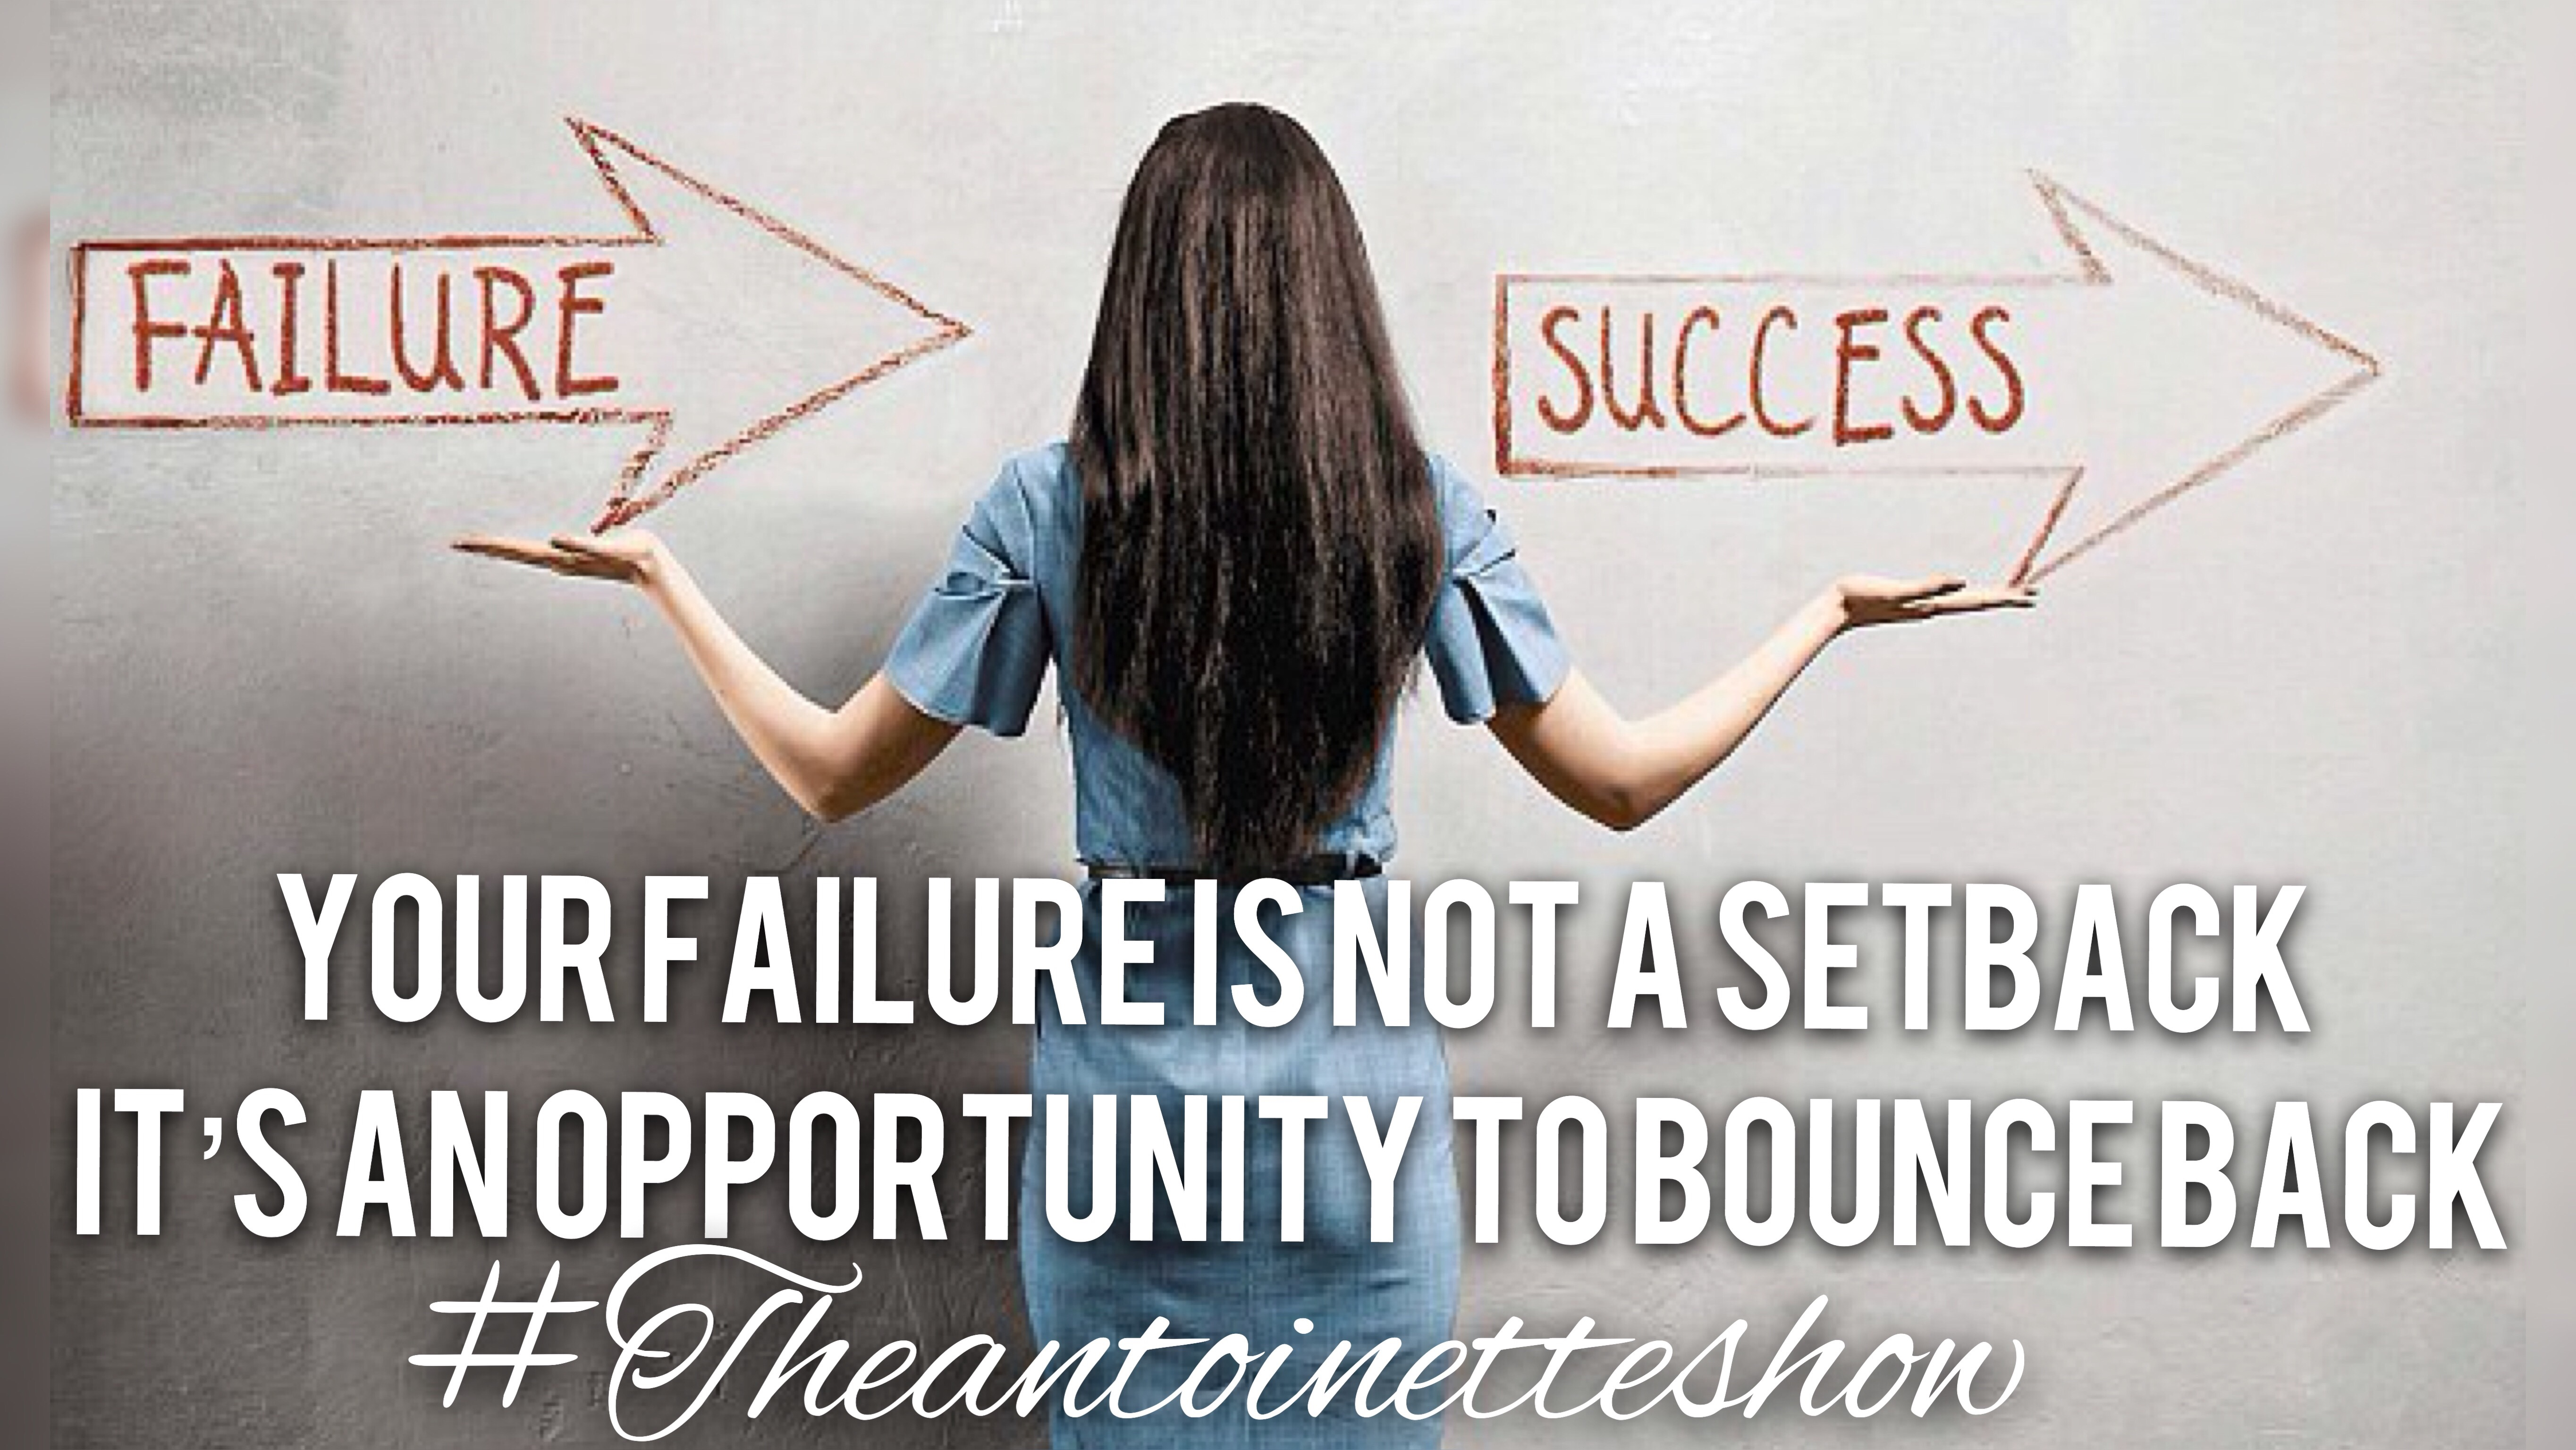 Your failure is not a setback it's an opportunity to bounce back